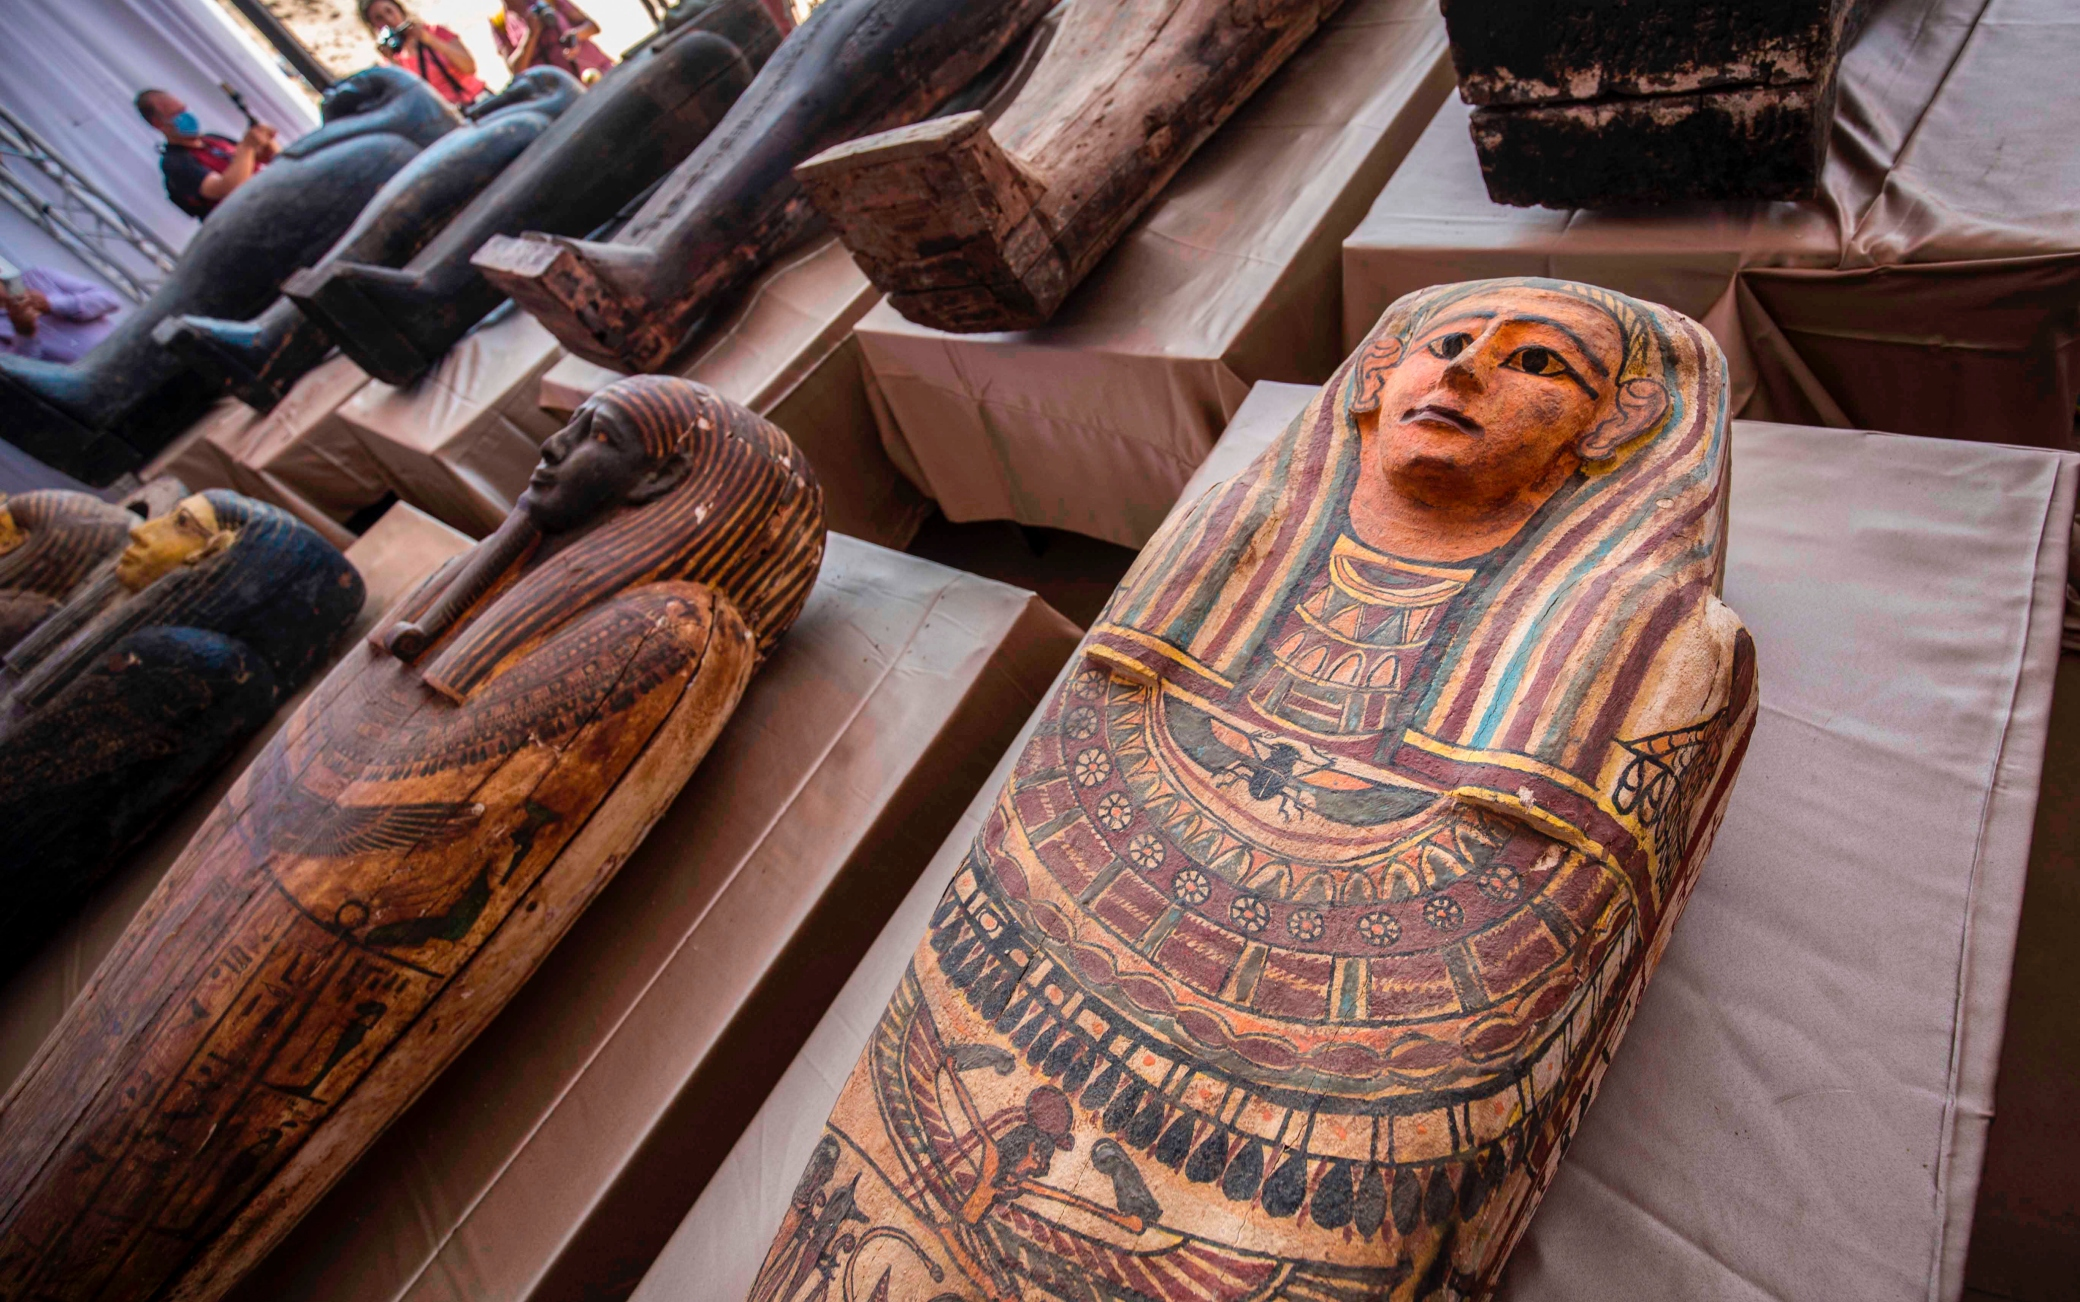 A picture taken on October 3, 2020 shows sarcophaguses, excavated by the Egyptian archaeological mission which discovered a deep burial well with more than 59 human coffins closed for more than 2,500 years, displayed during a press conference  at the Saqqara necropolis, 30 kms south of the Egyptian capital Cairo. - They were unearthed south of Cairo in the sprawling burial ground of Saqqara, the necropolis of the ancient Egyptian capital of Memphis, a UNESCO World Heritage site. Their exteriors are covered in intricate designs in vibrant colours as well as hieroglyphic pictorials. (Photo by Khaled DESOUKI / AFP) (Photo by KHALED DESOUKI/AFP via Getty Images)